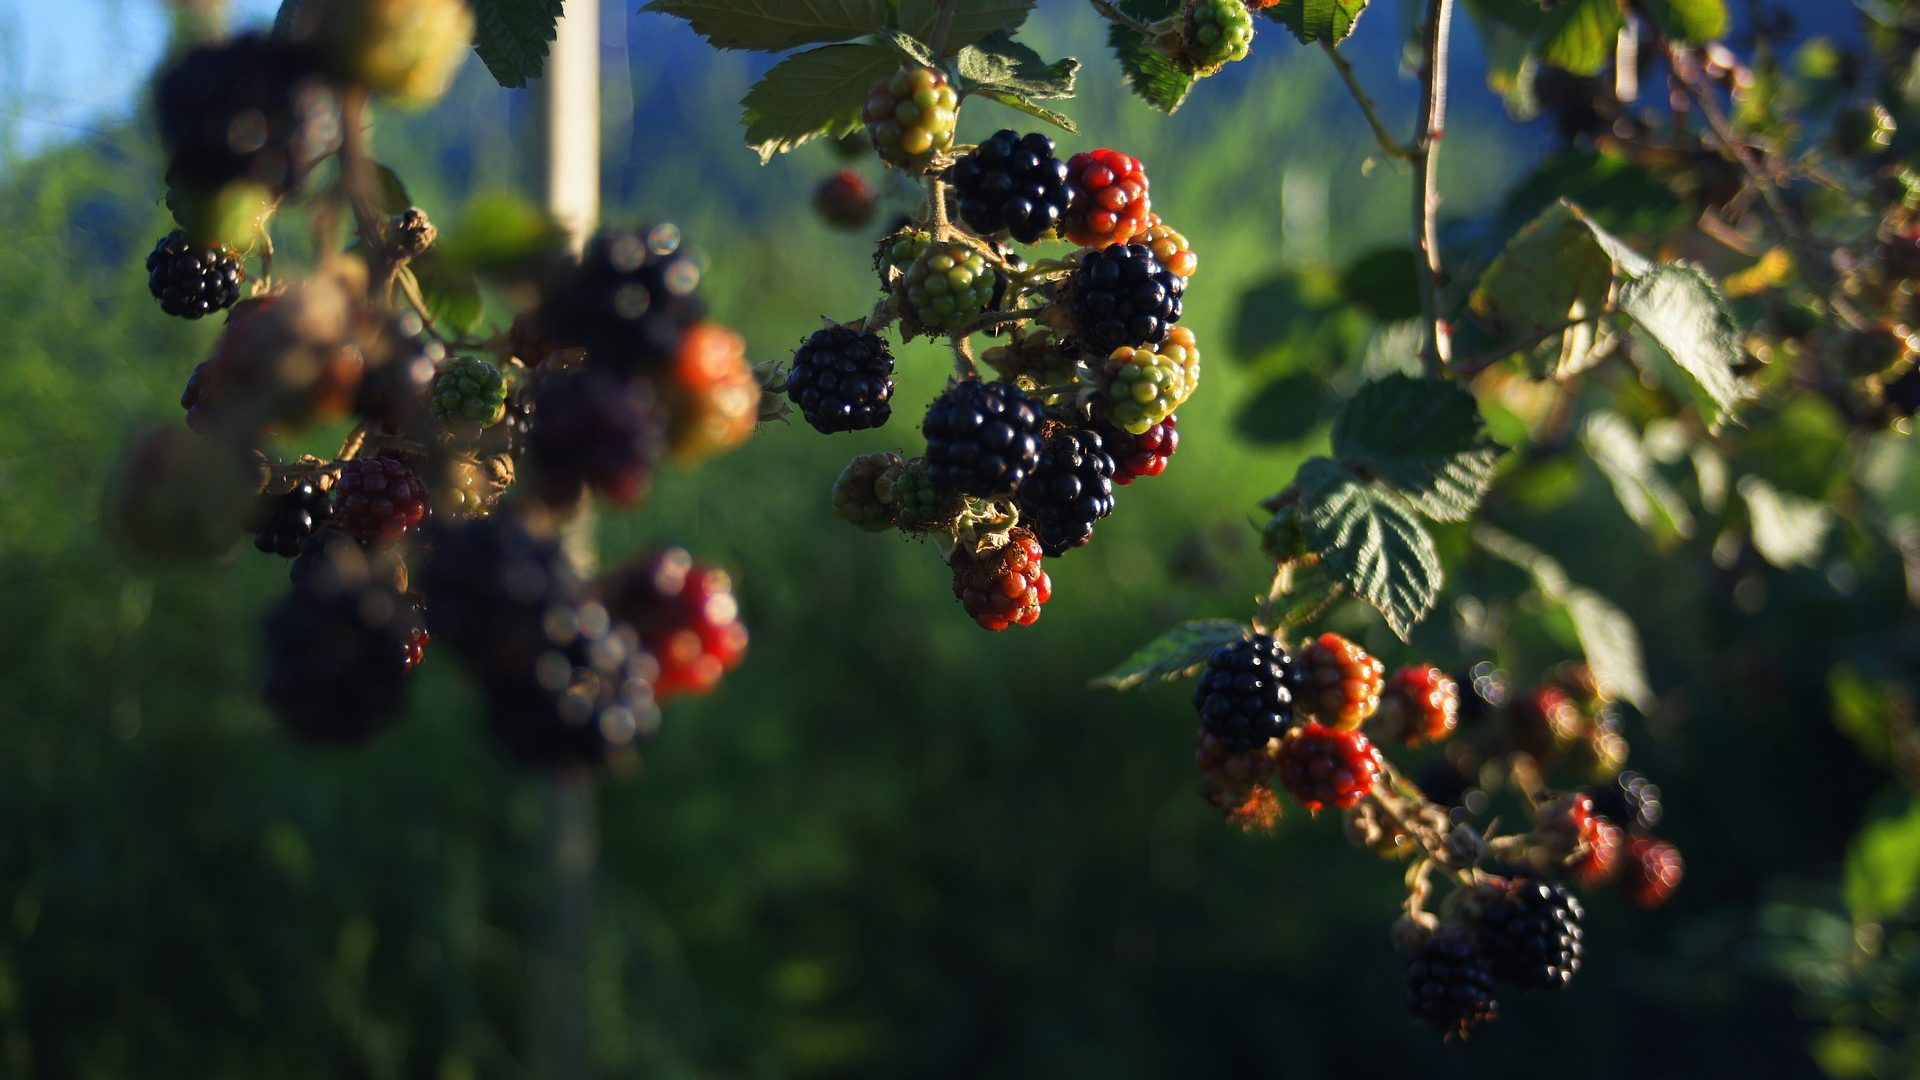 blackberries-3499218_1920